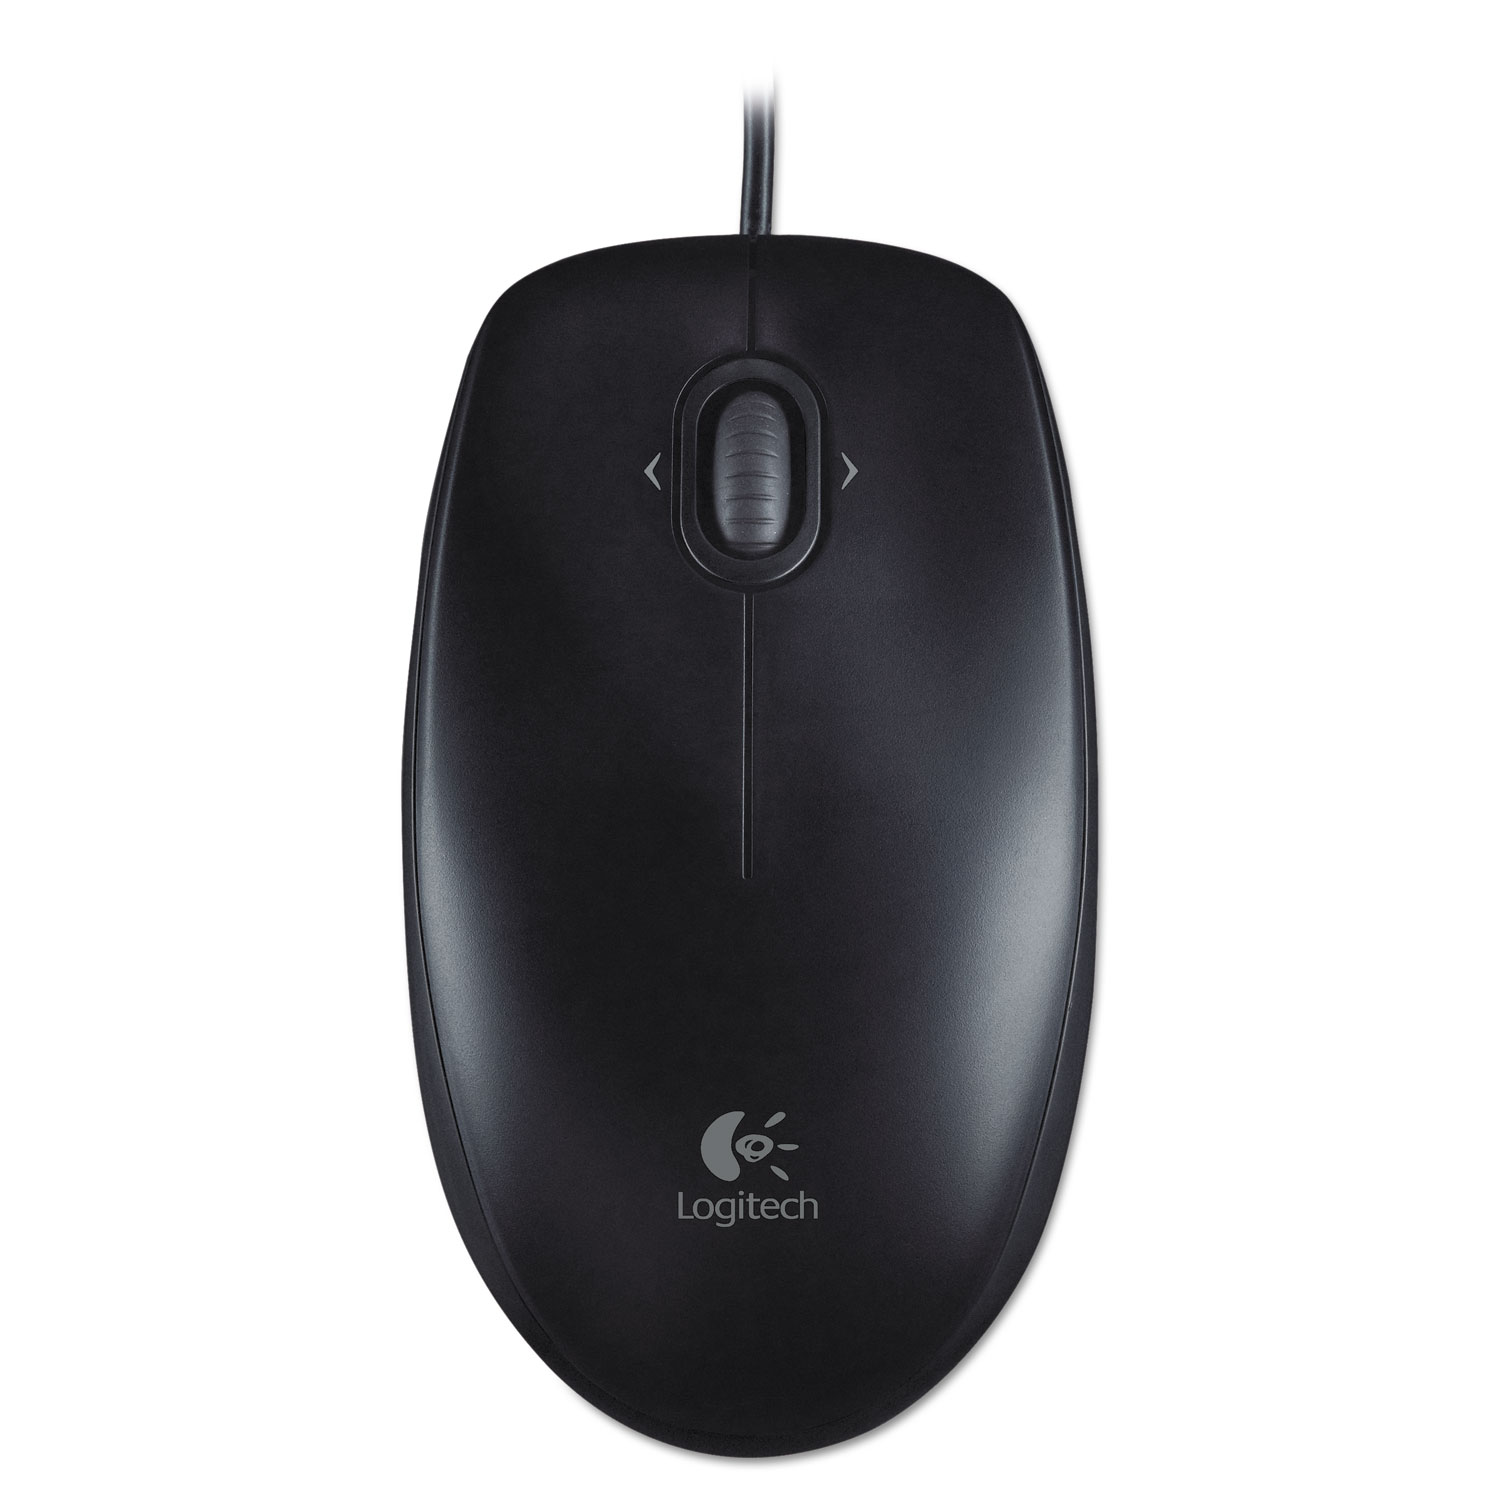 M100 Corded Optical Mouse, USB 2.0, Left/Right Hand Use, Black